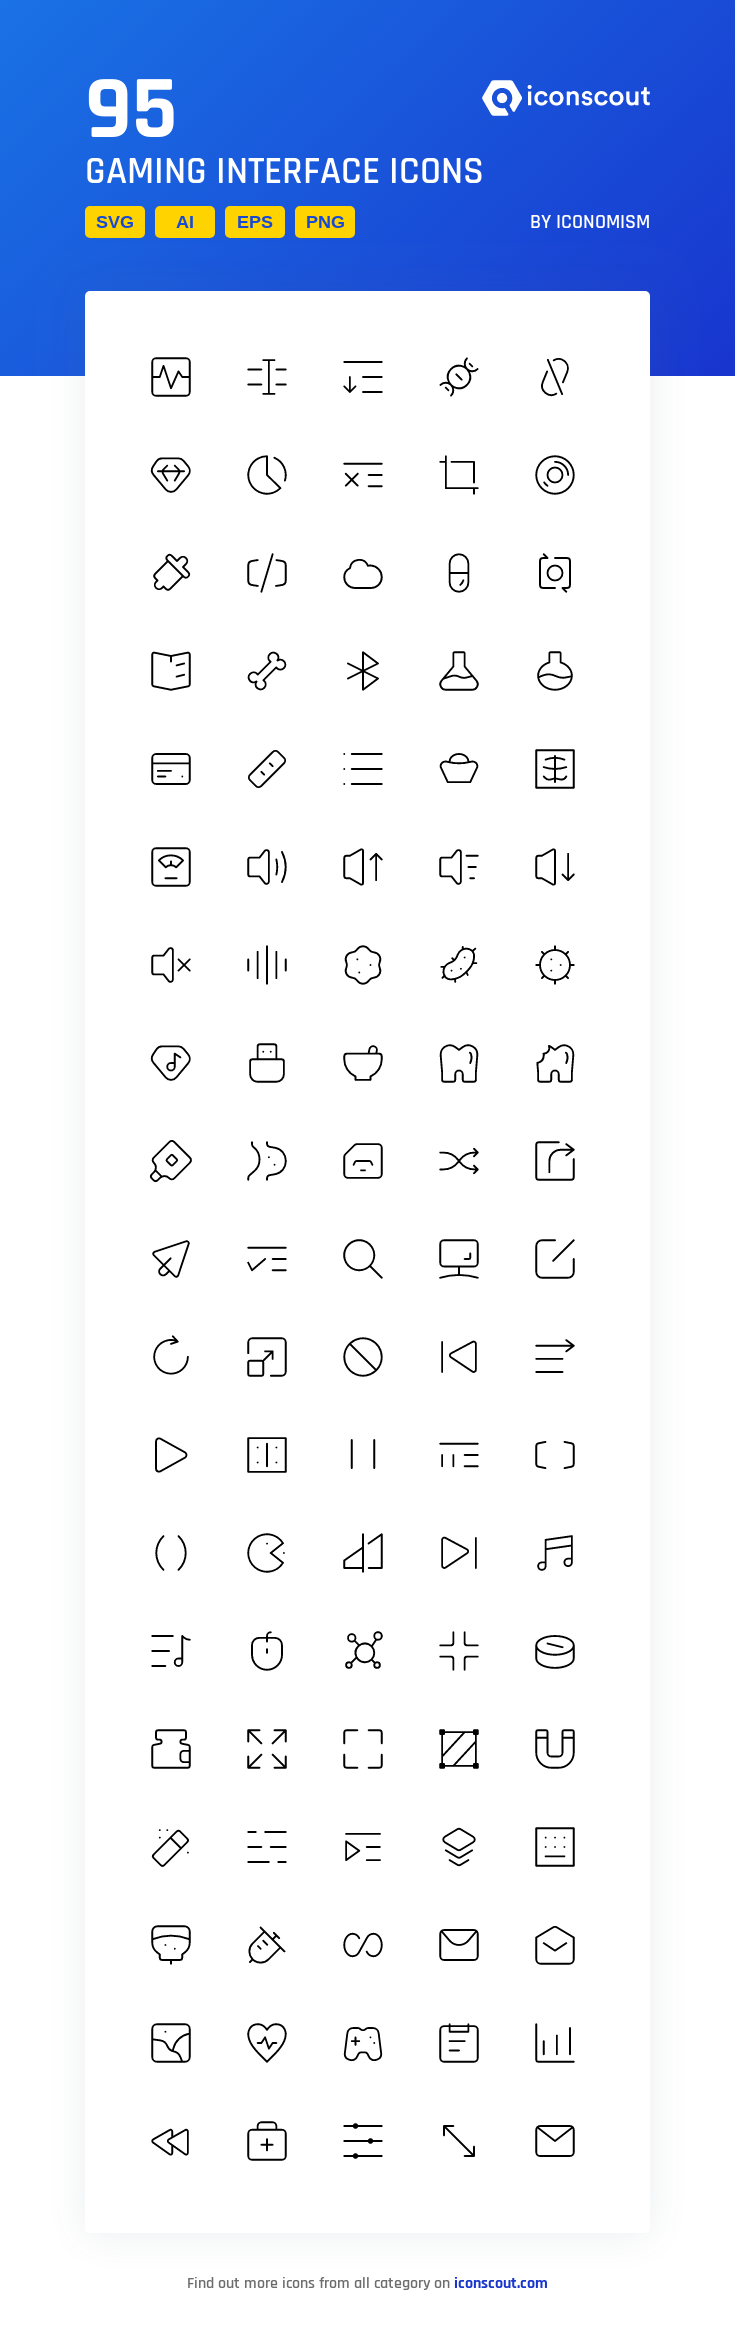 Gaming Interface  Icon Pack - 95 Line Icons #gameinterface